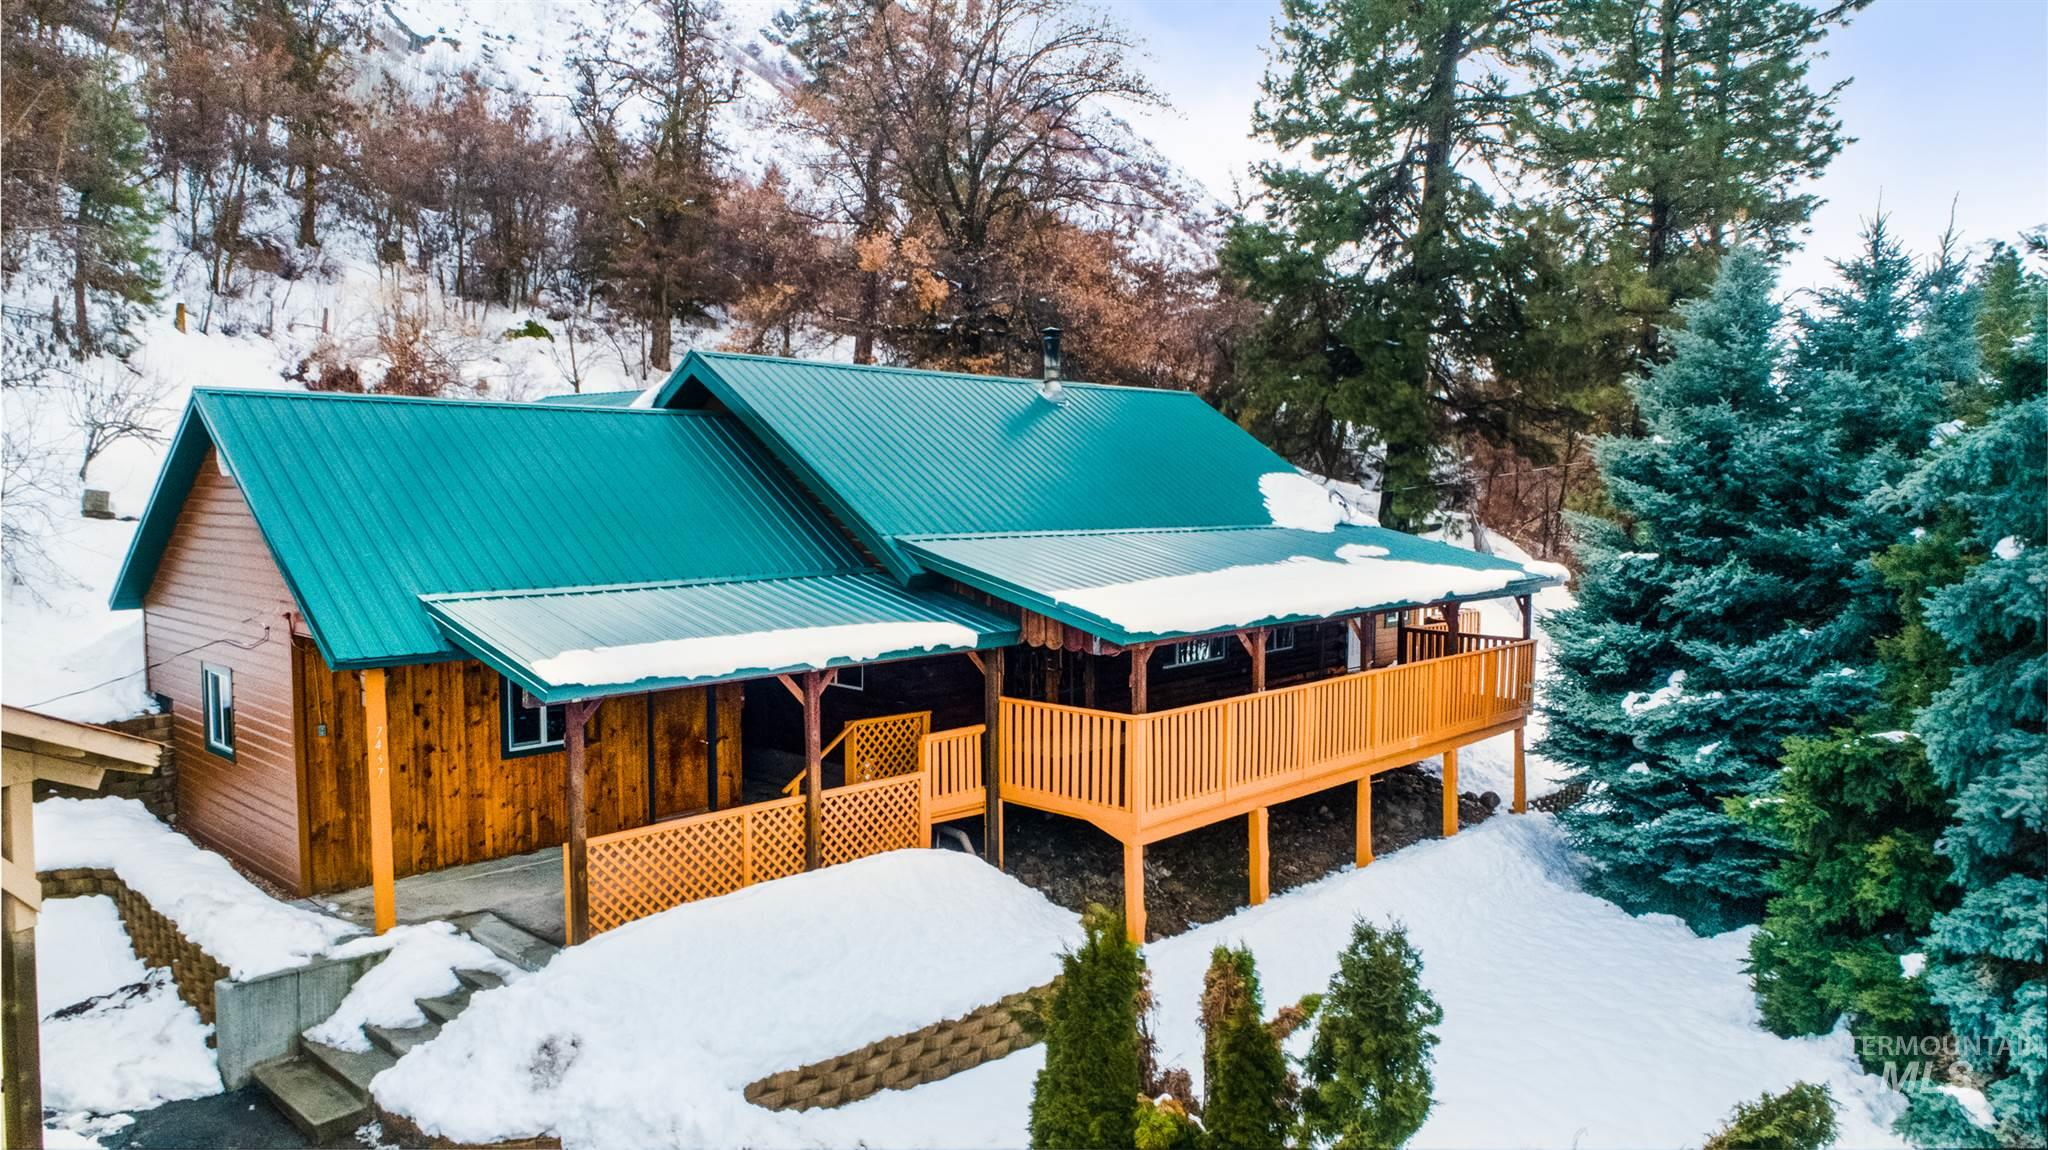 OPEN Sun. 3-5 Iconic log cabin steps from the Payette river, public lands & only 35 minutes from Boise. Sitting on 1.7 acres across from Chief Parrish beach, this remodeled gem is a perfect mountain getaway. Endless outdoor living & toy space w/level backyard, expansive deck, RV garage/carport, attached shop w/power & 3 storage sheds. 2 story tongue & groove ceilings, updated lighting, main level master w/soaker tub, massive guest bedrooms plus flex room, & brand new guest bath w/tiled shower off great room